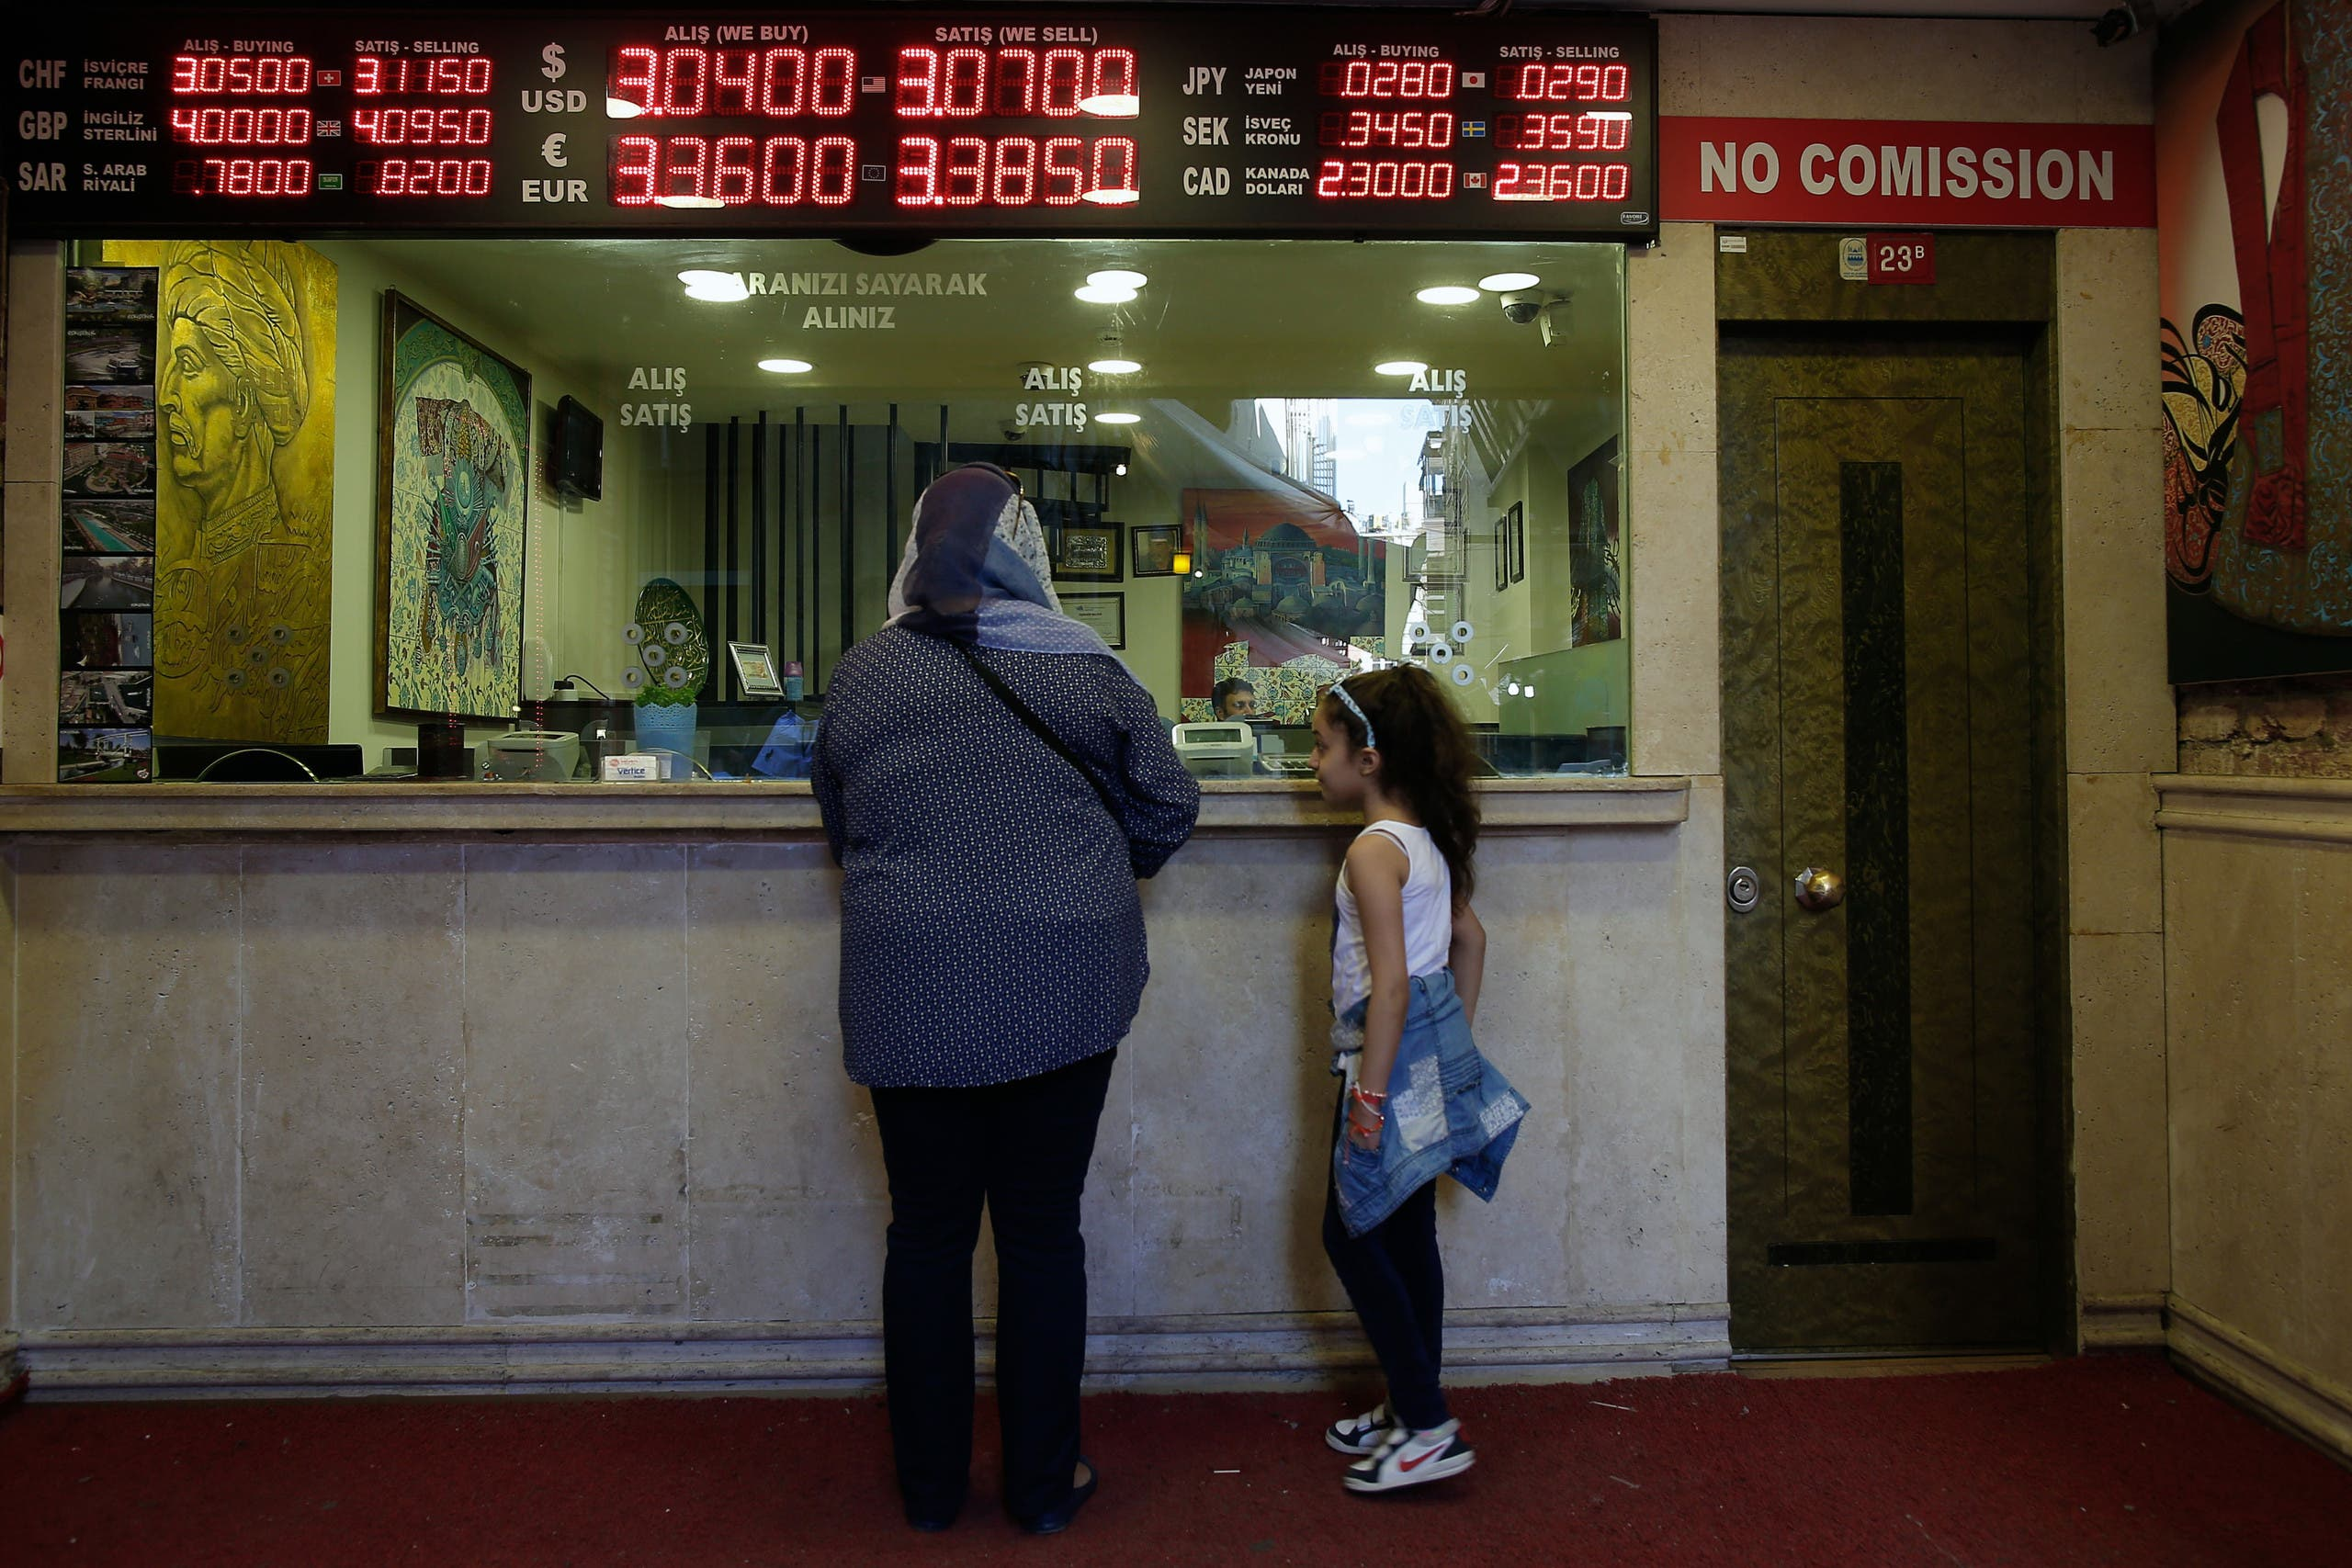 A board shows exchange rates at a foreign currency shop in central Istanbul. (File photo: AP)